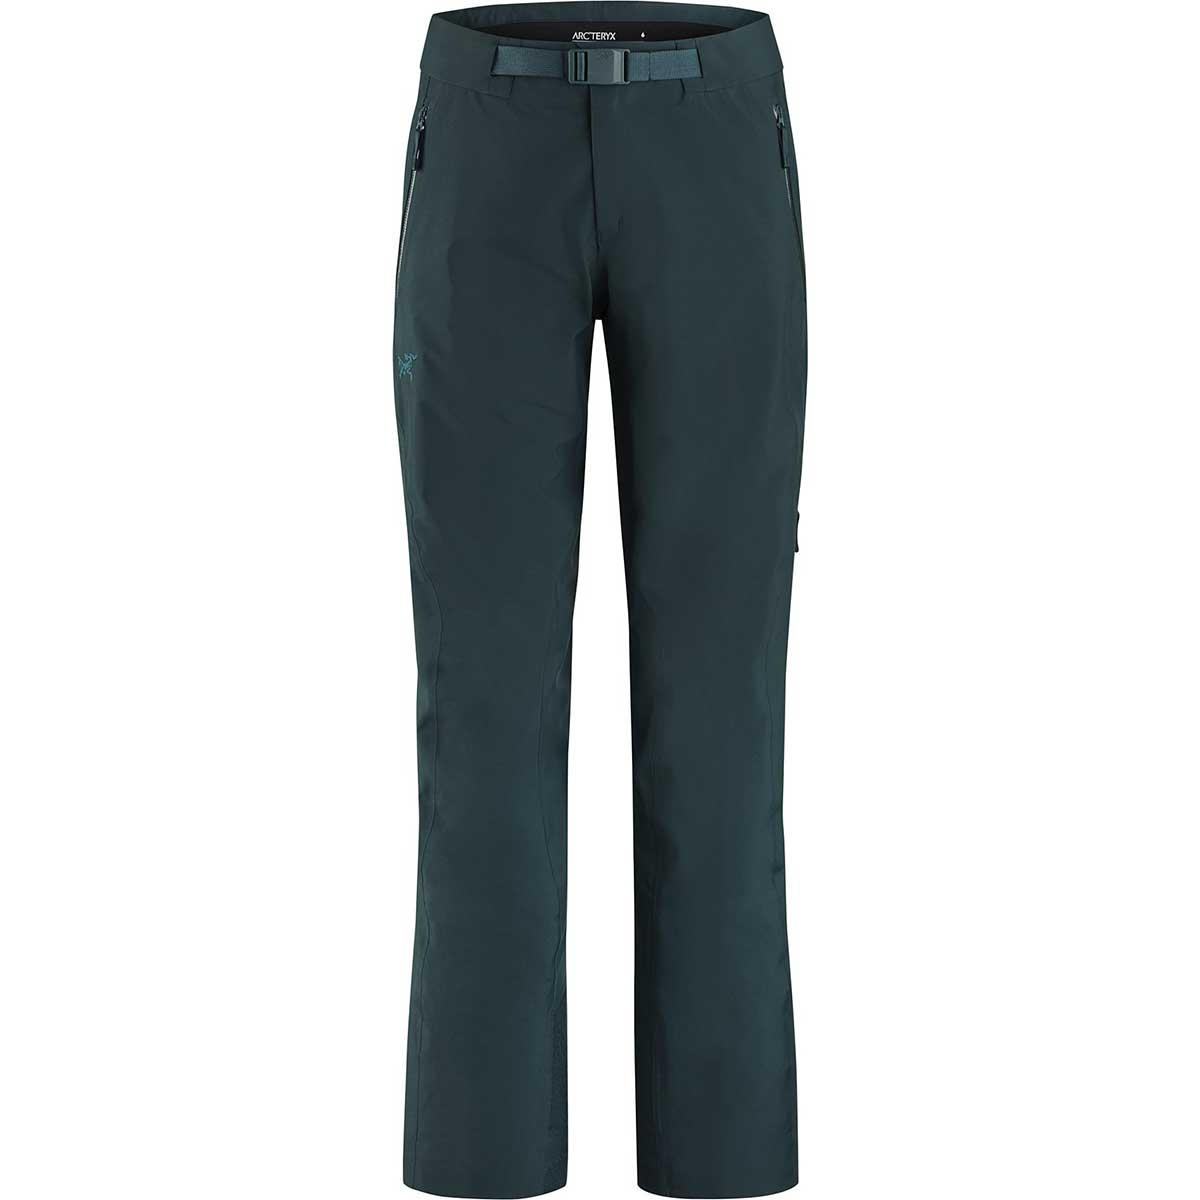 Arcteryx women's Sentinel LT Pant in Labyrinth front view